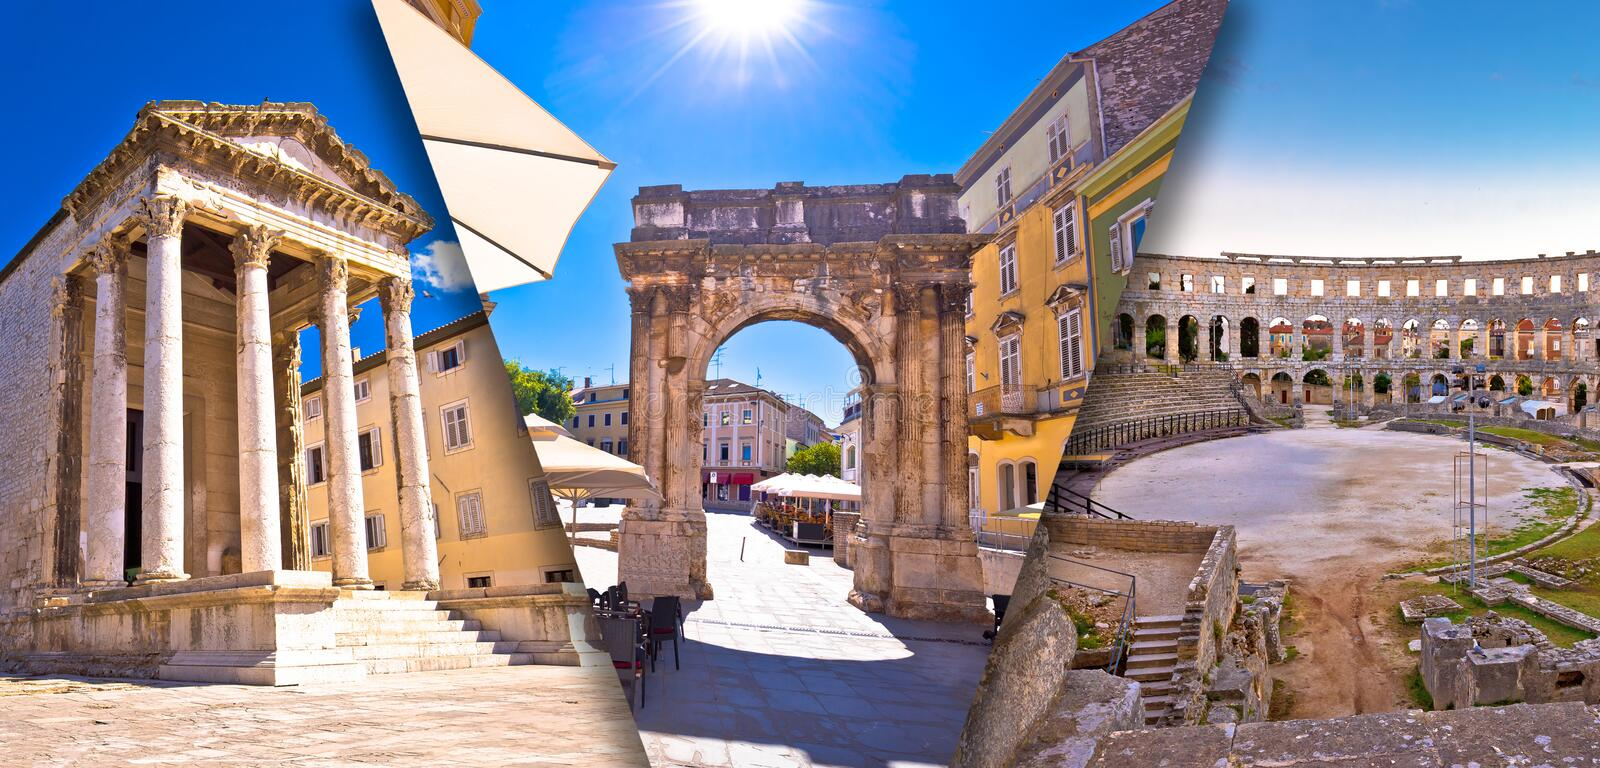 Town of Pula historic Roman landmarks panoramic collage tourist postcard view stock photography